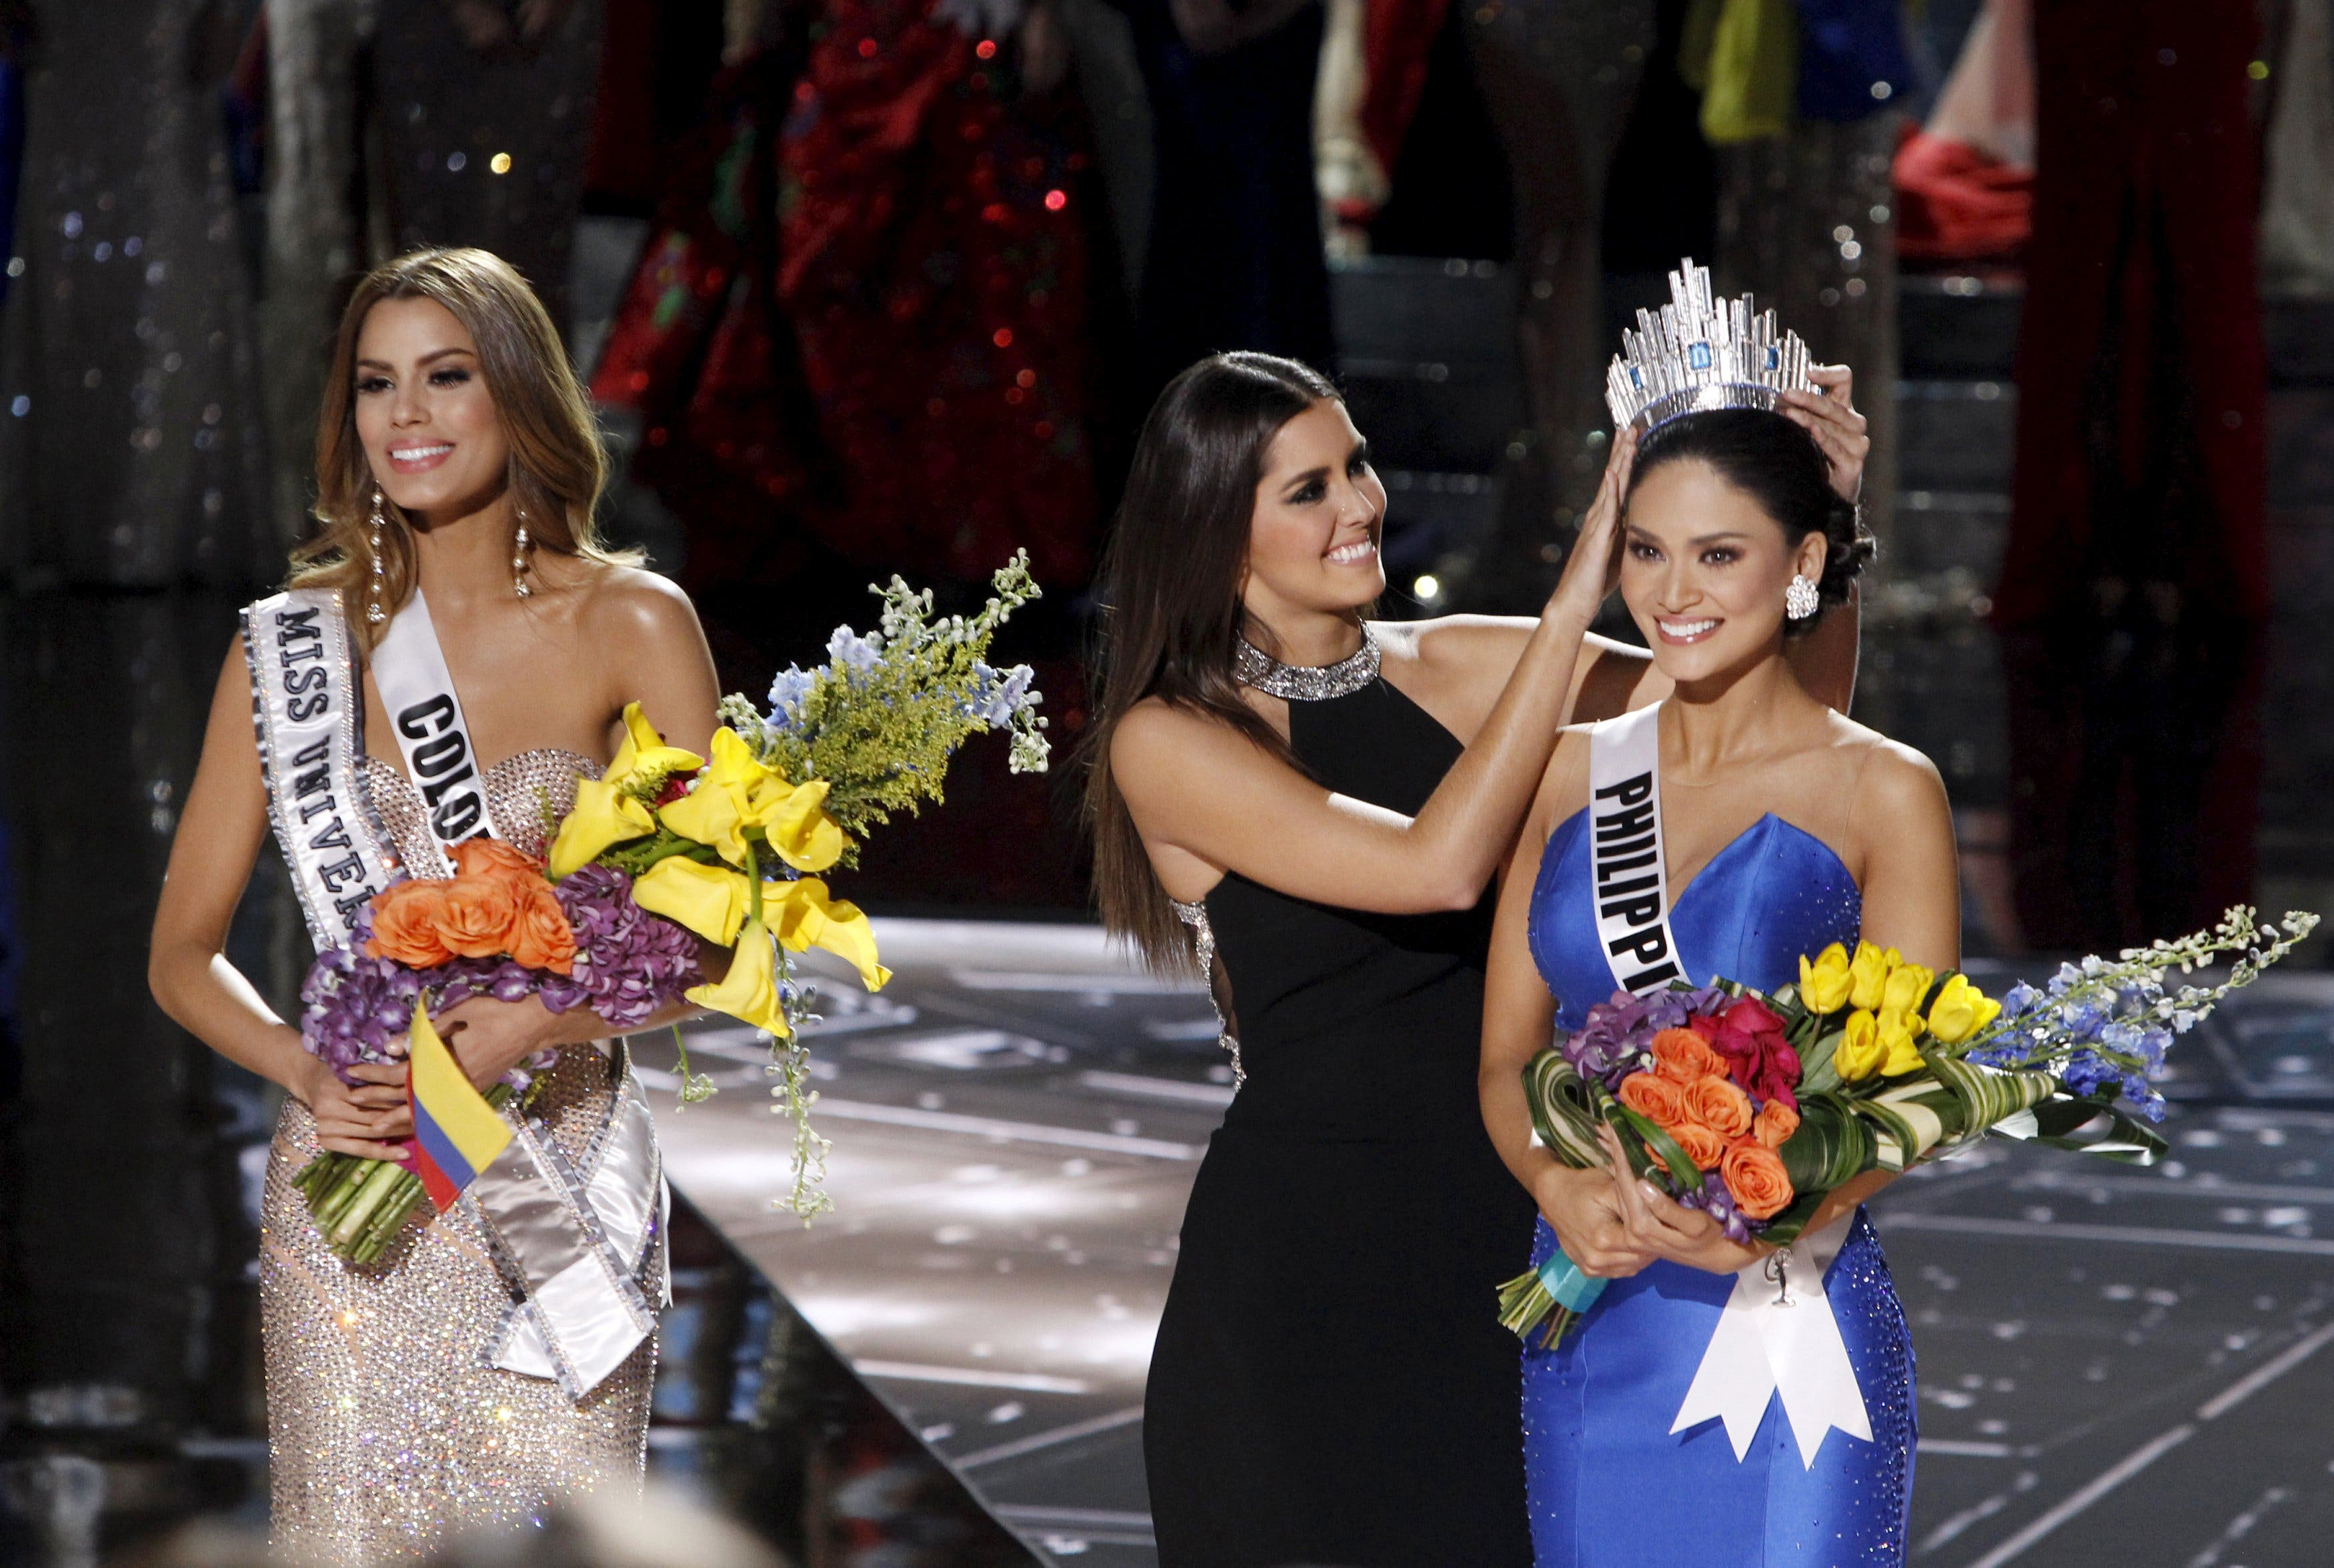 Miss Philippines Wurtzbach waits with Miss Colombia Gutierrez onstage after Miss Colombia was initially crowned Miss Universe 2015 in Las Vegas. (Reuters)